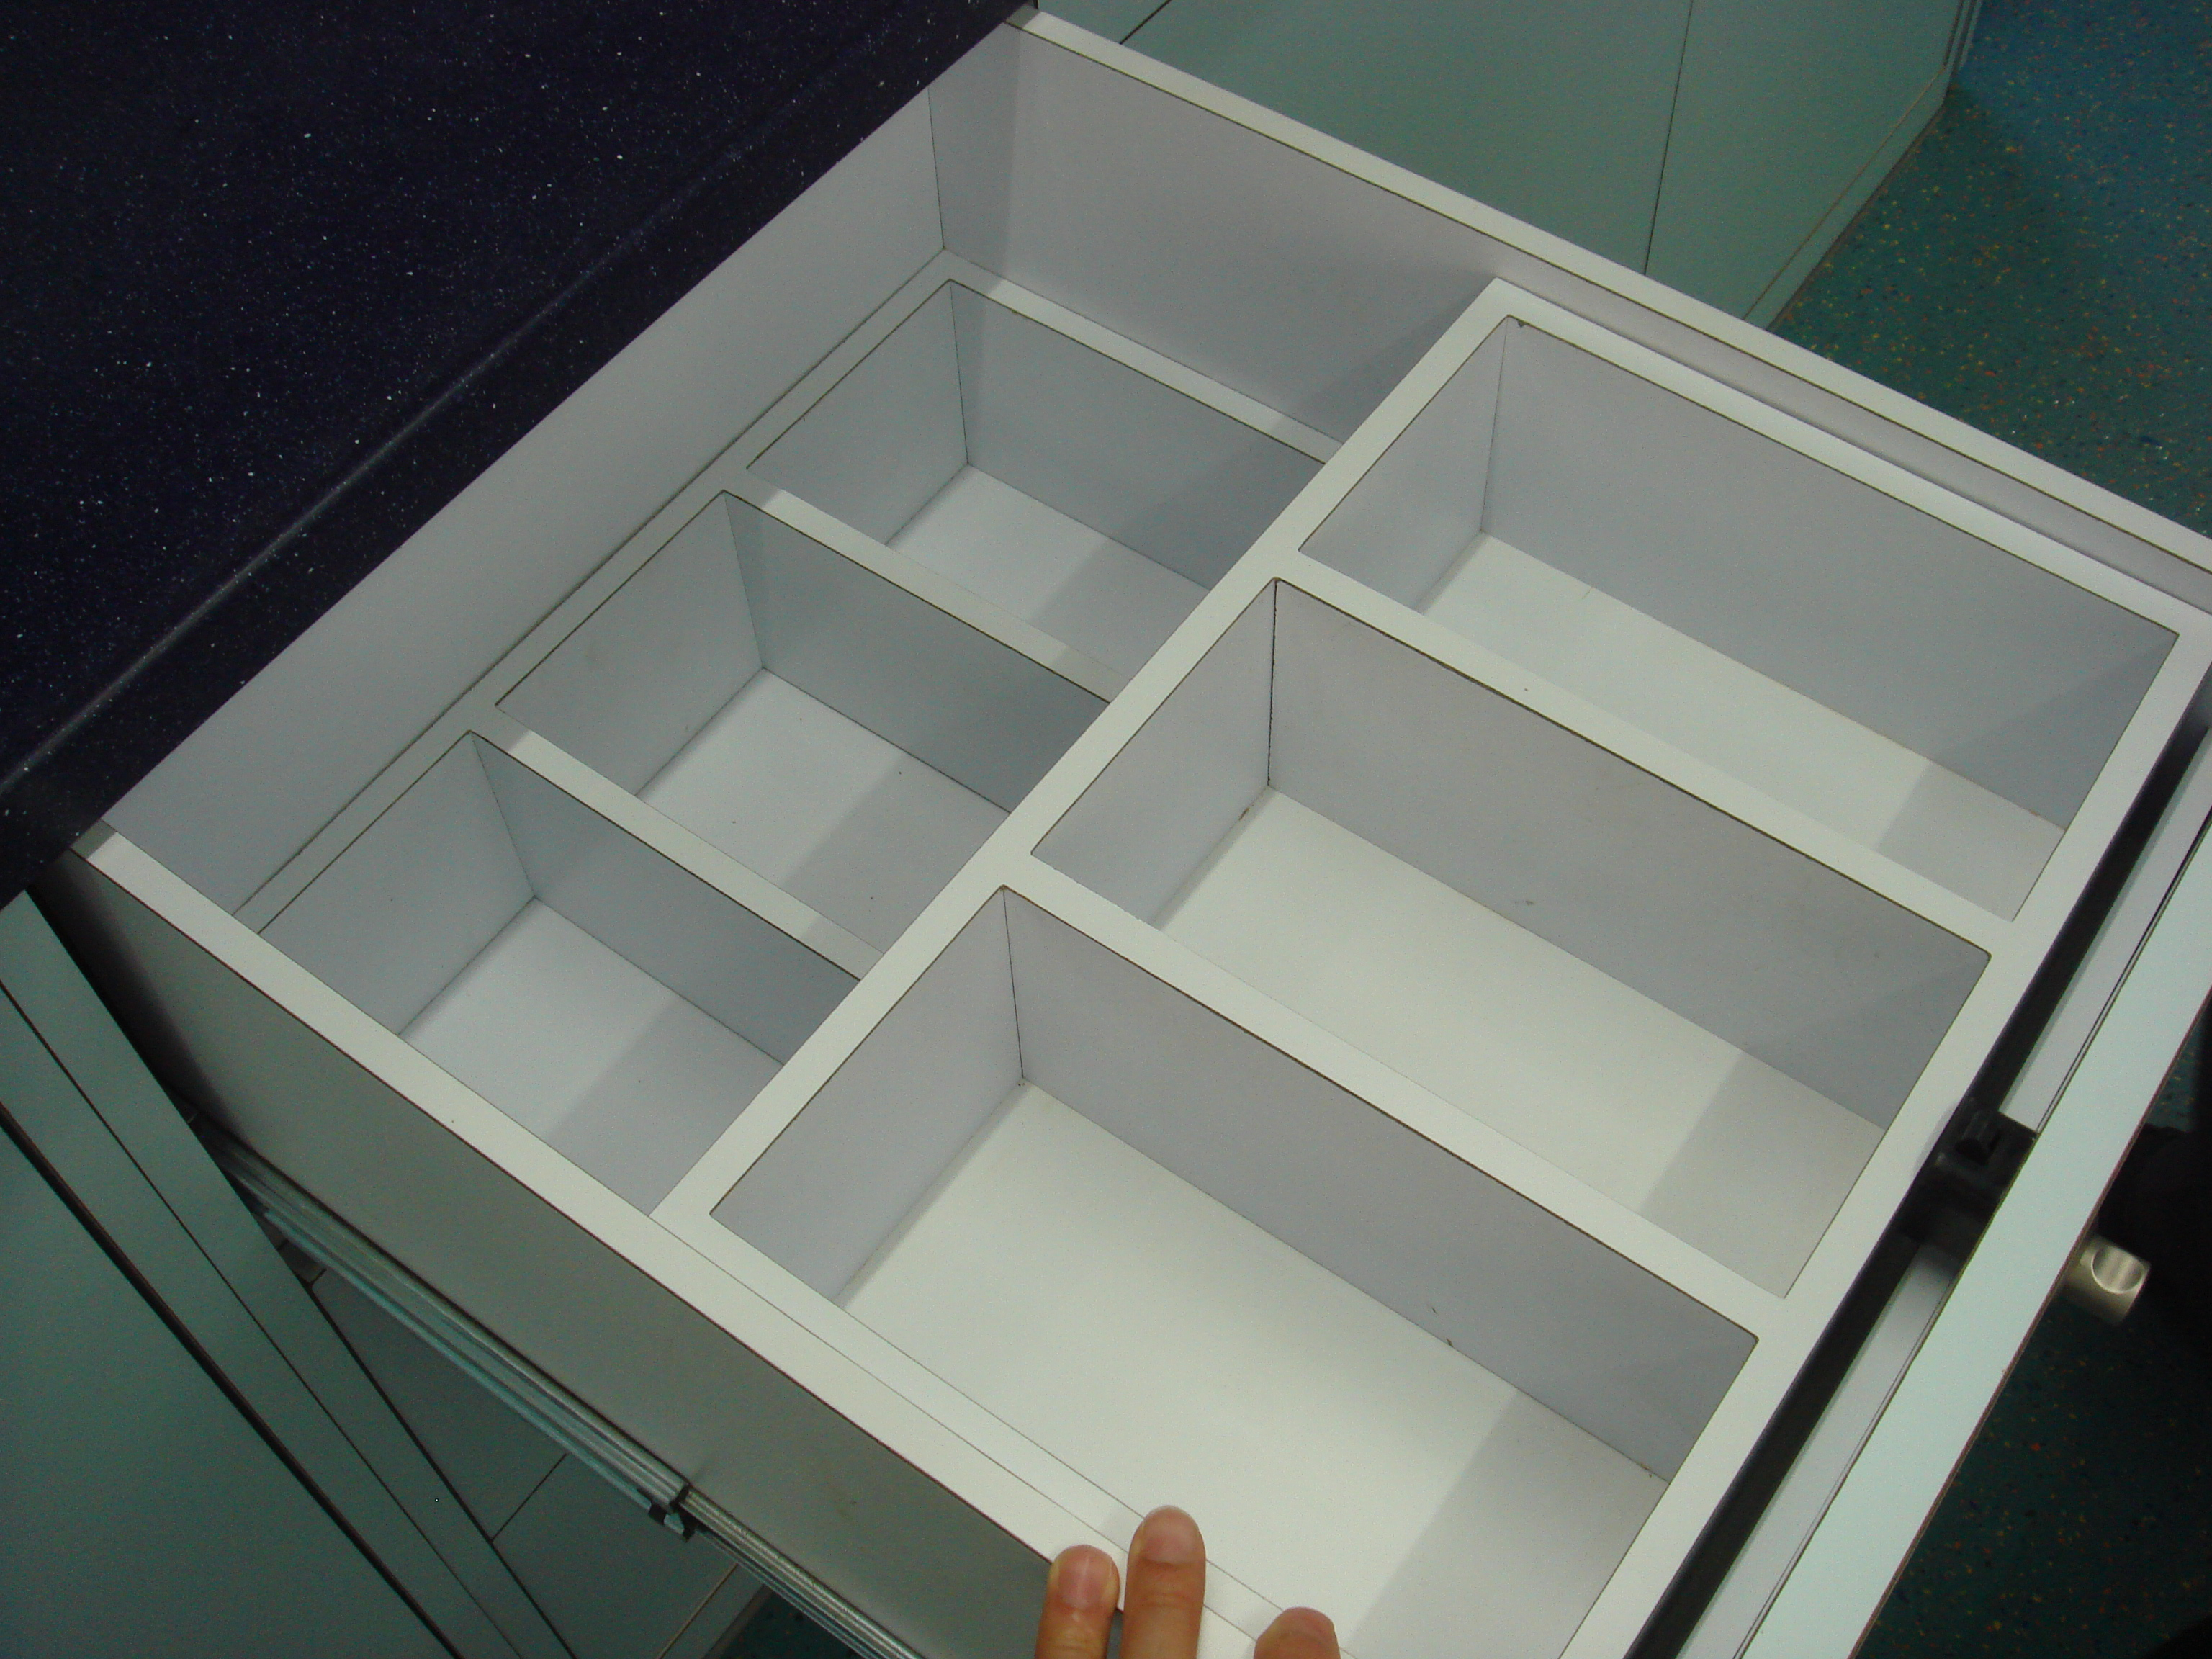 The drawers are all custom built and nicely polished.